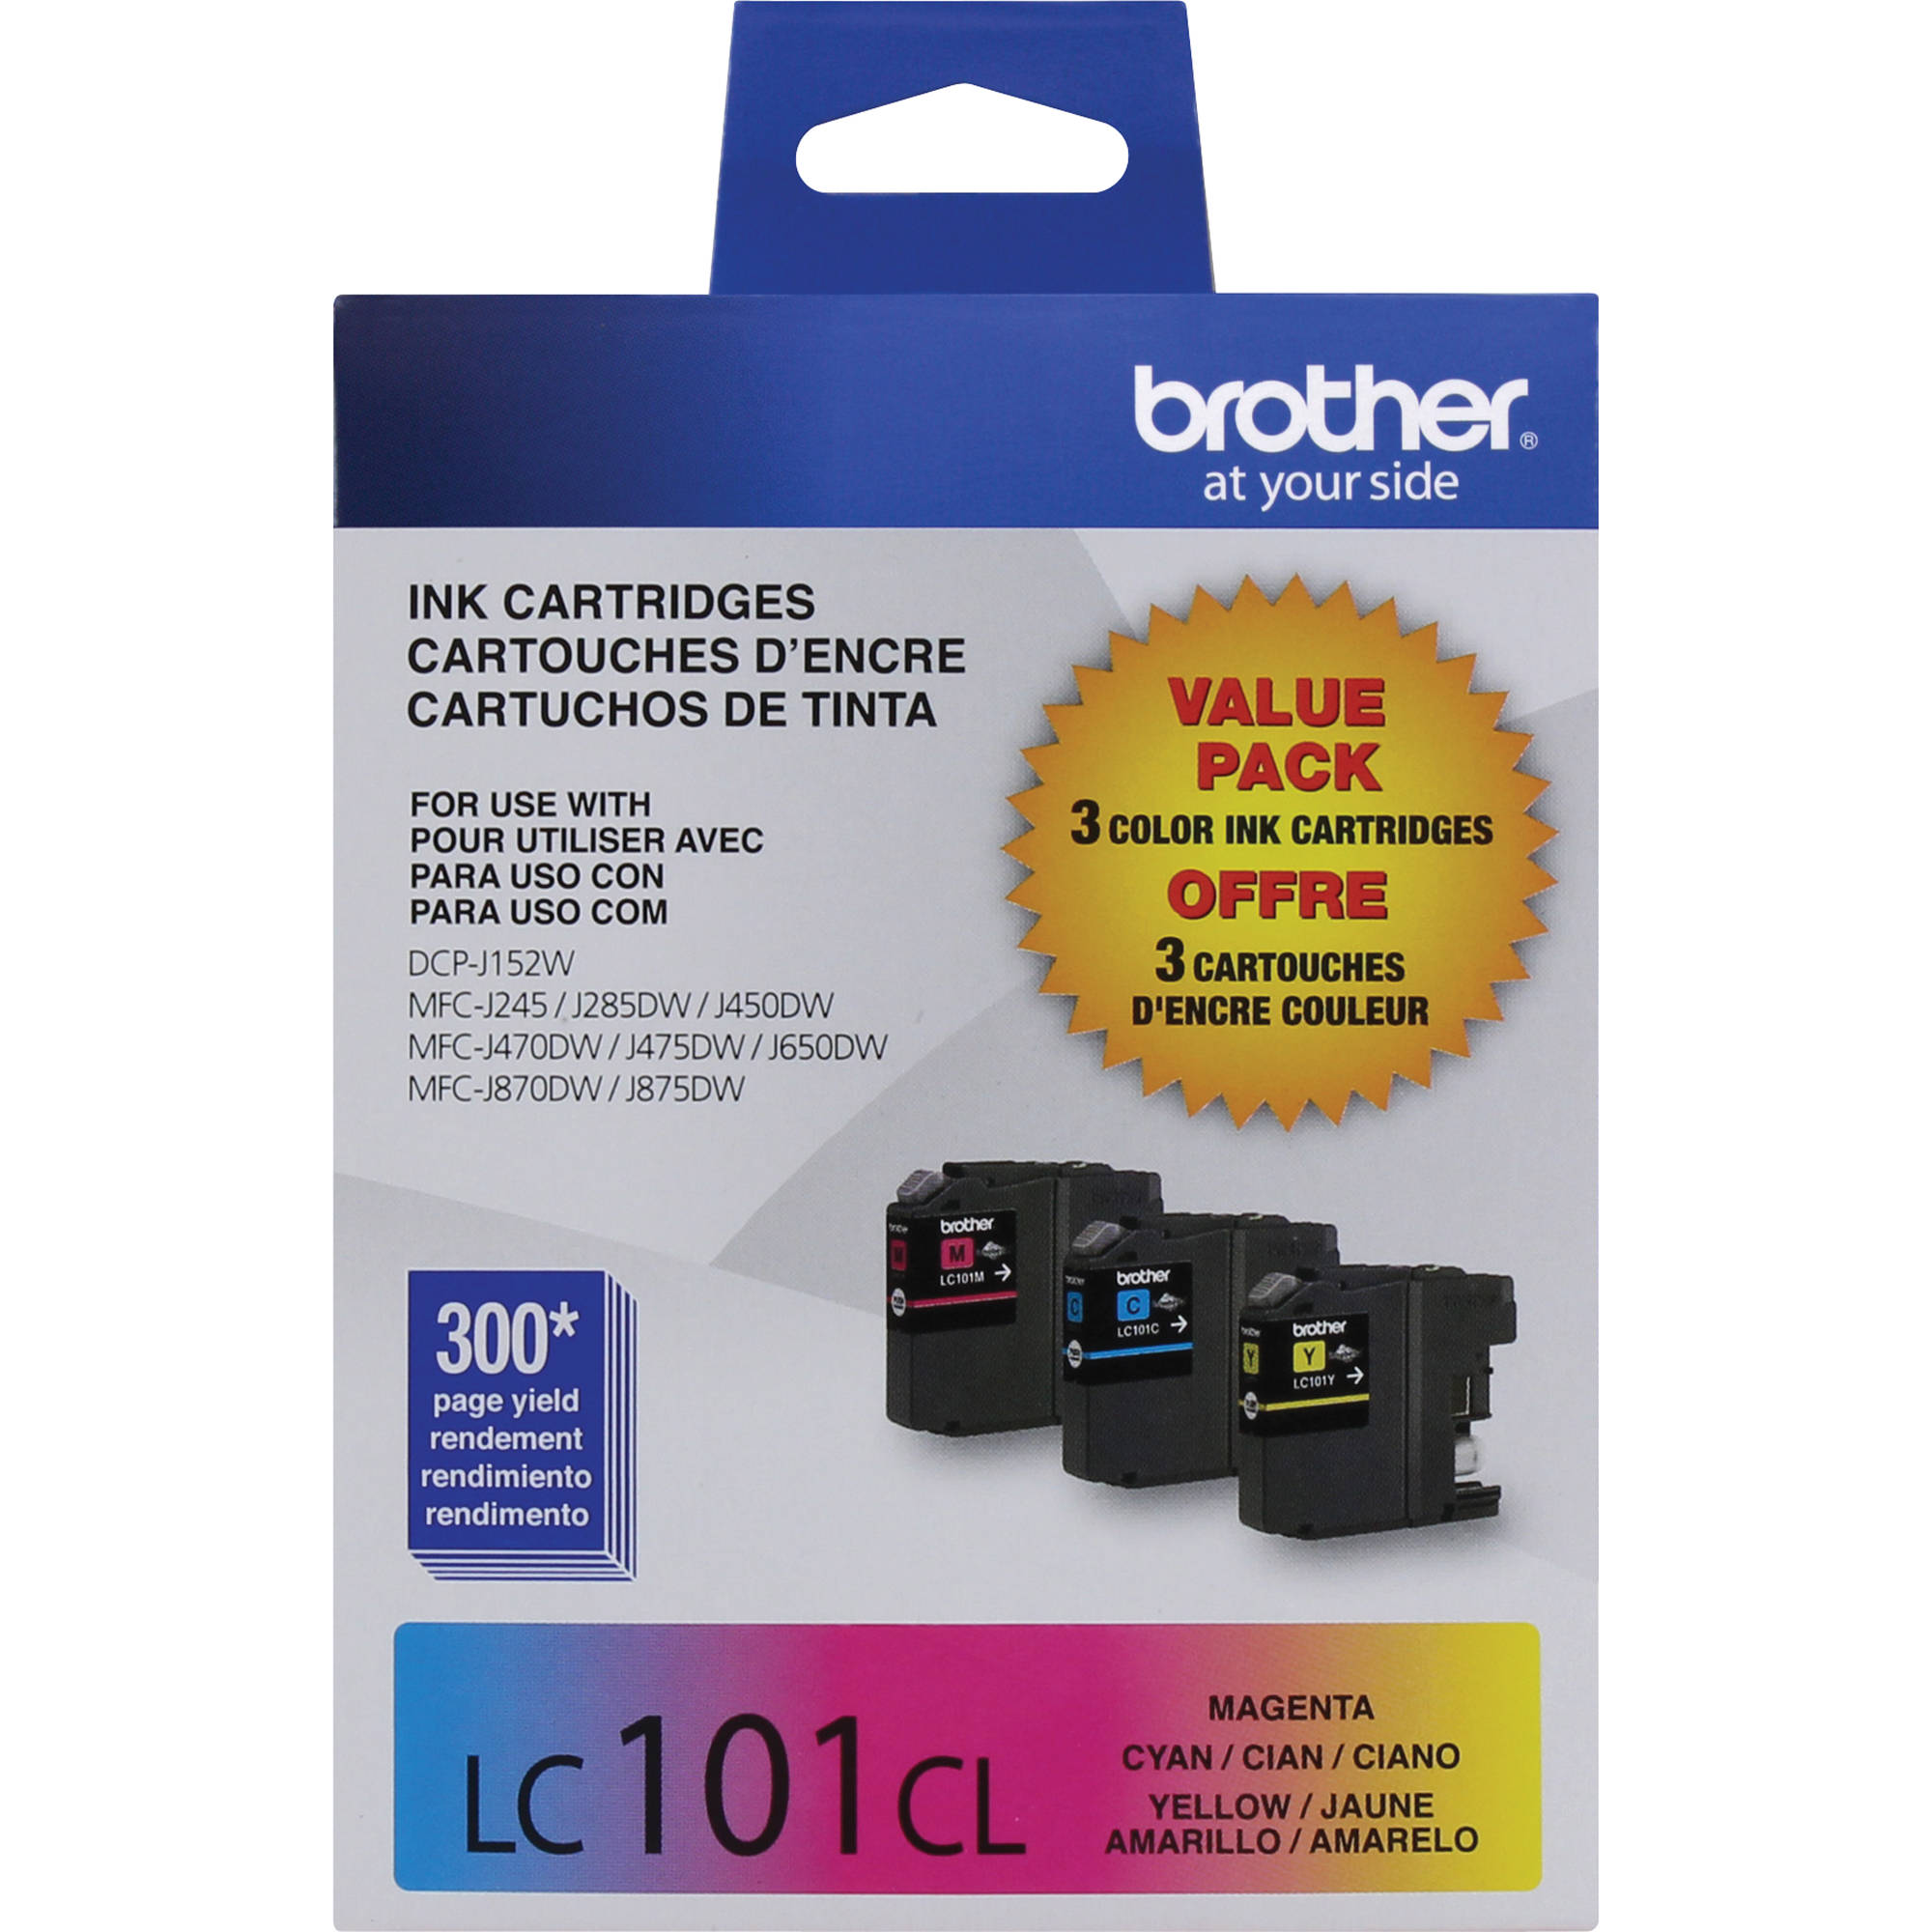 BROTHER LC101 WINDOWS 7 DRIVERS DOWNLOAD (2019)